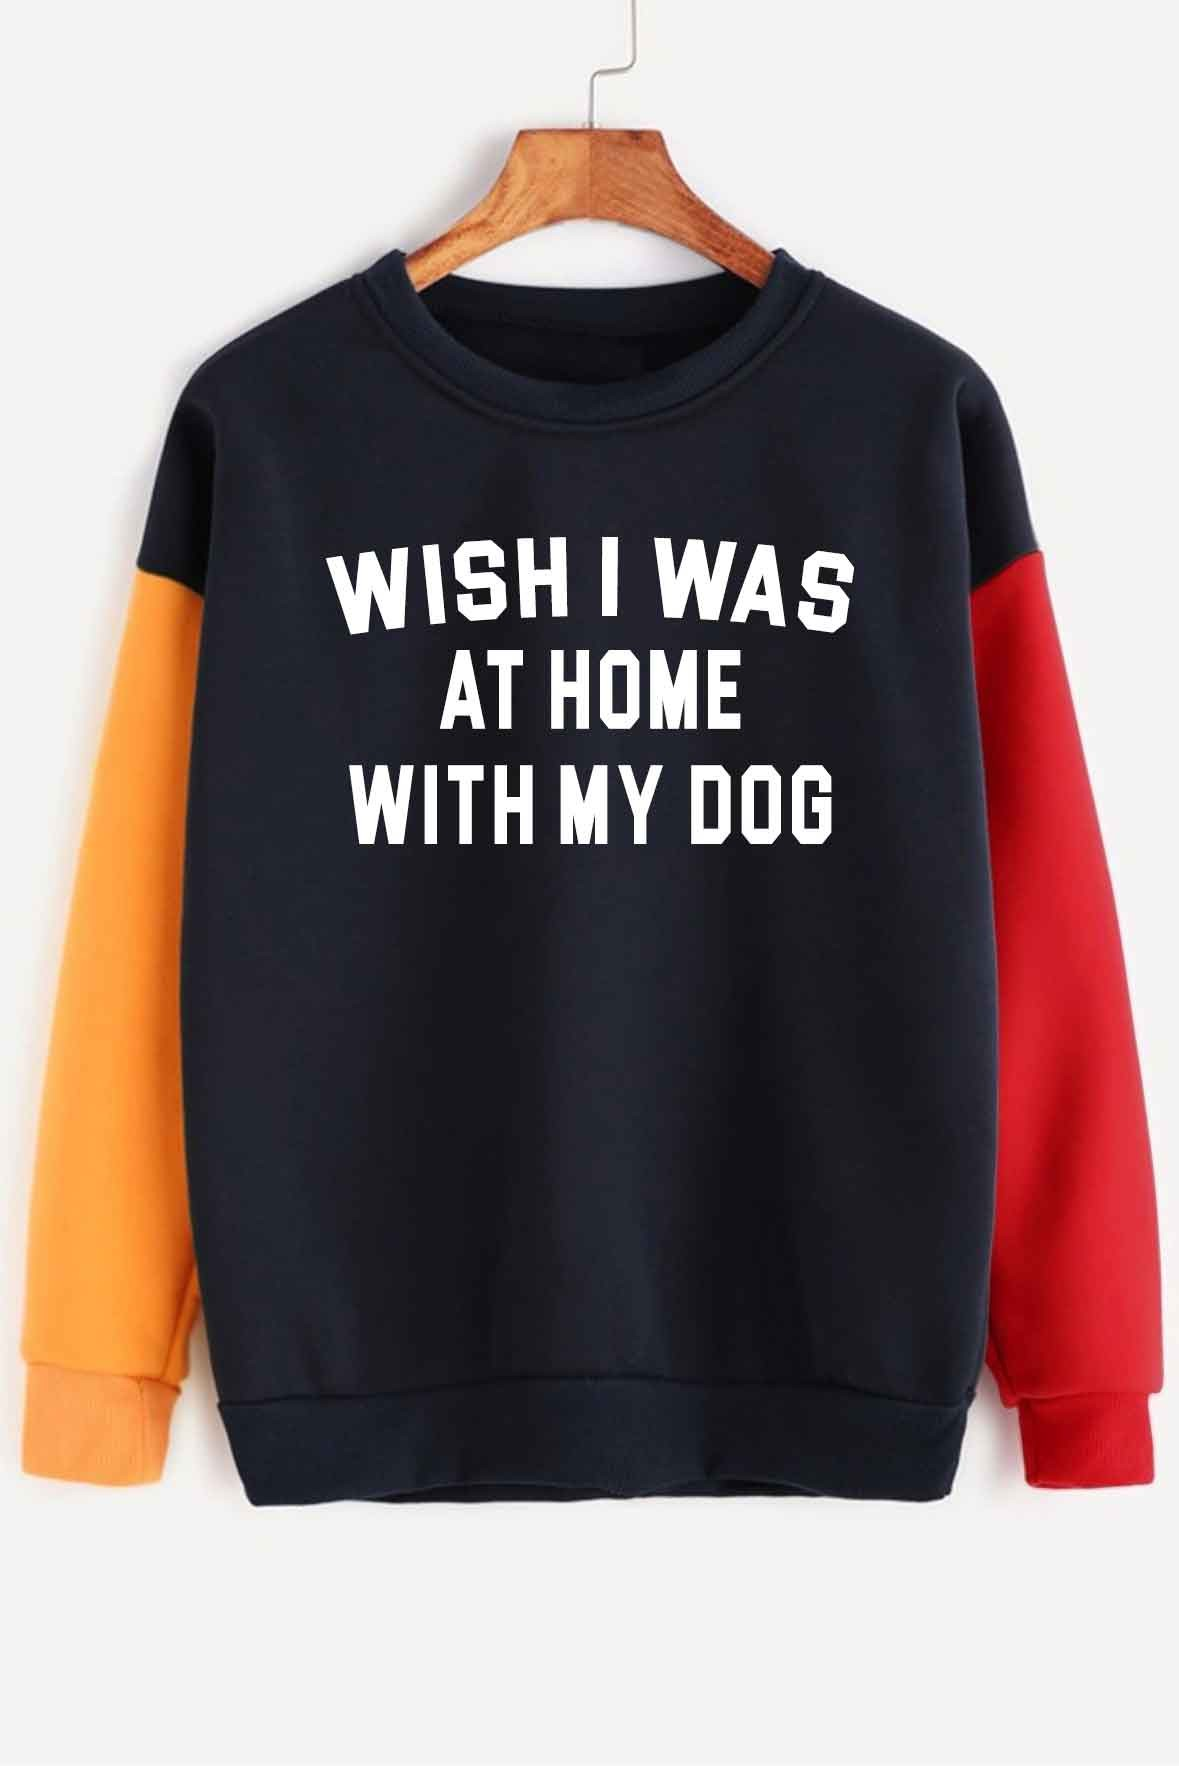 With my dog sweatshirt